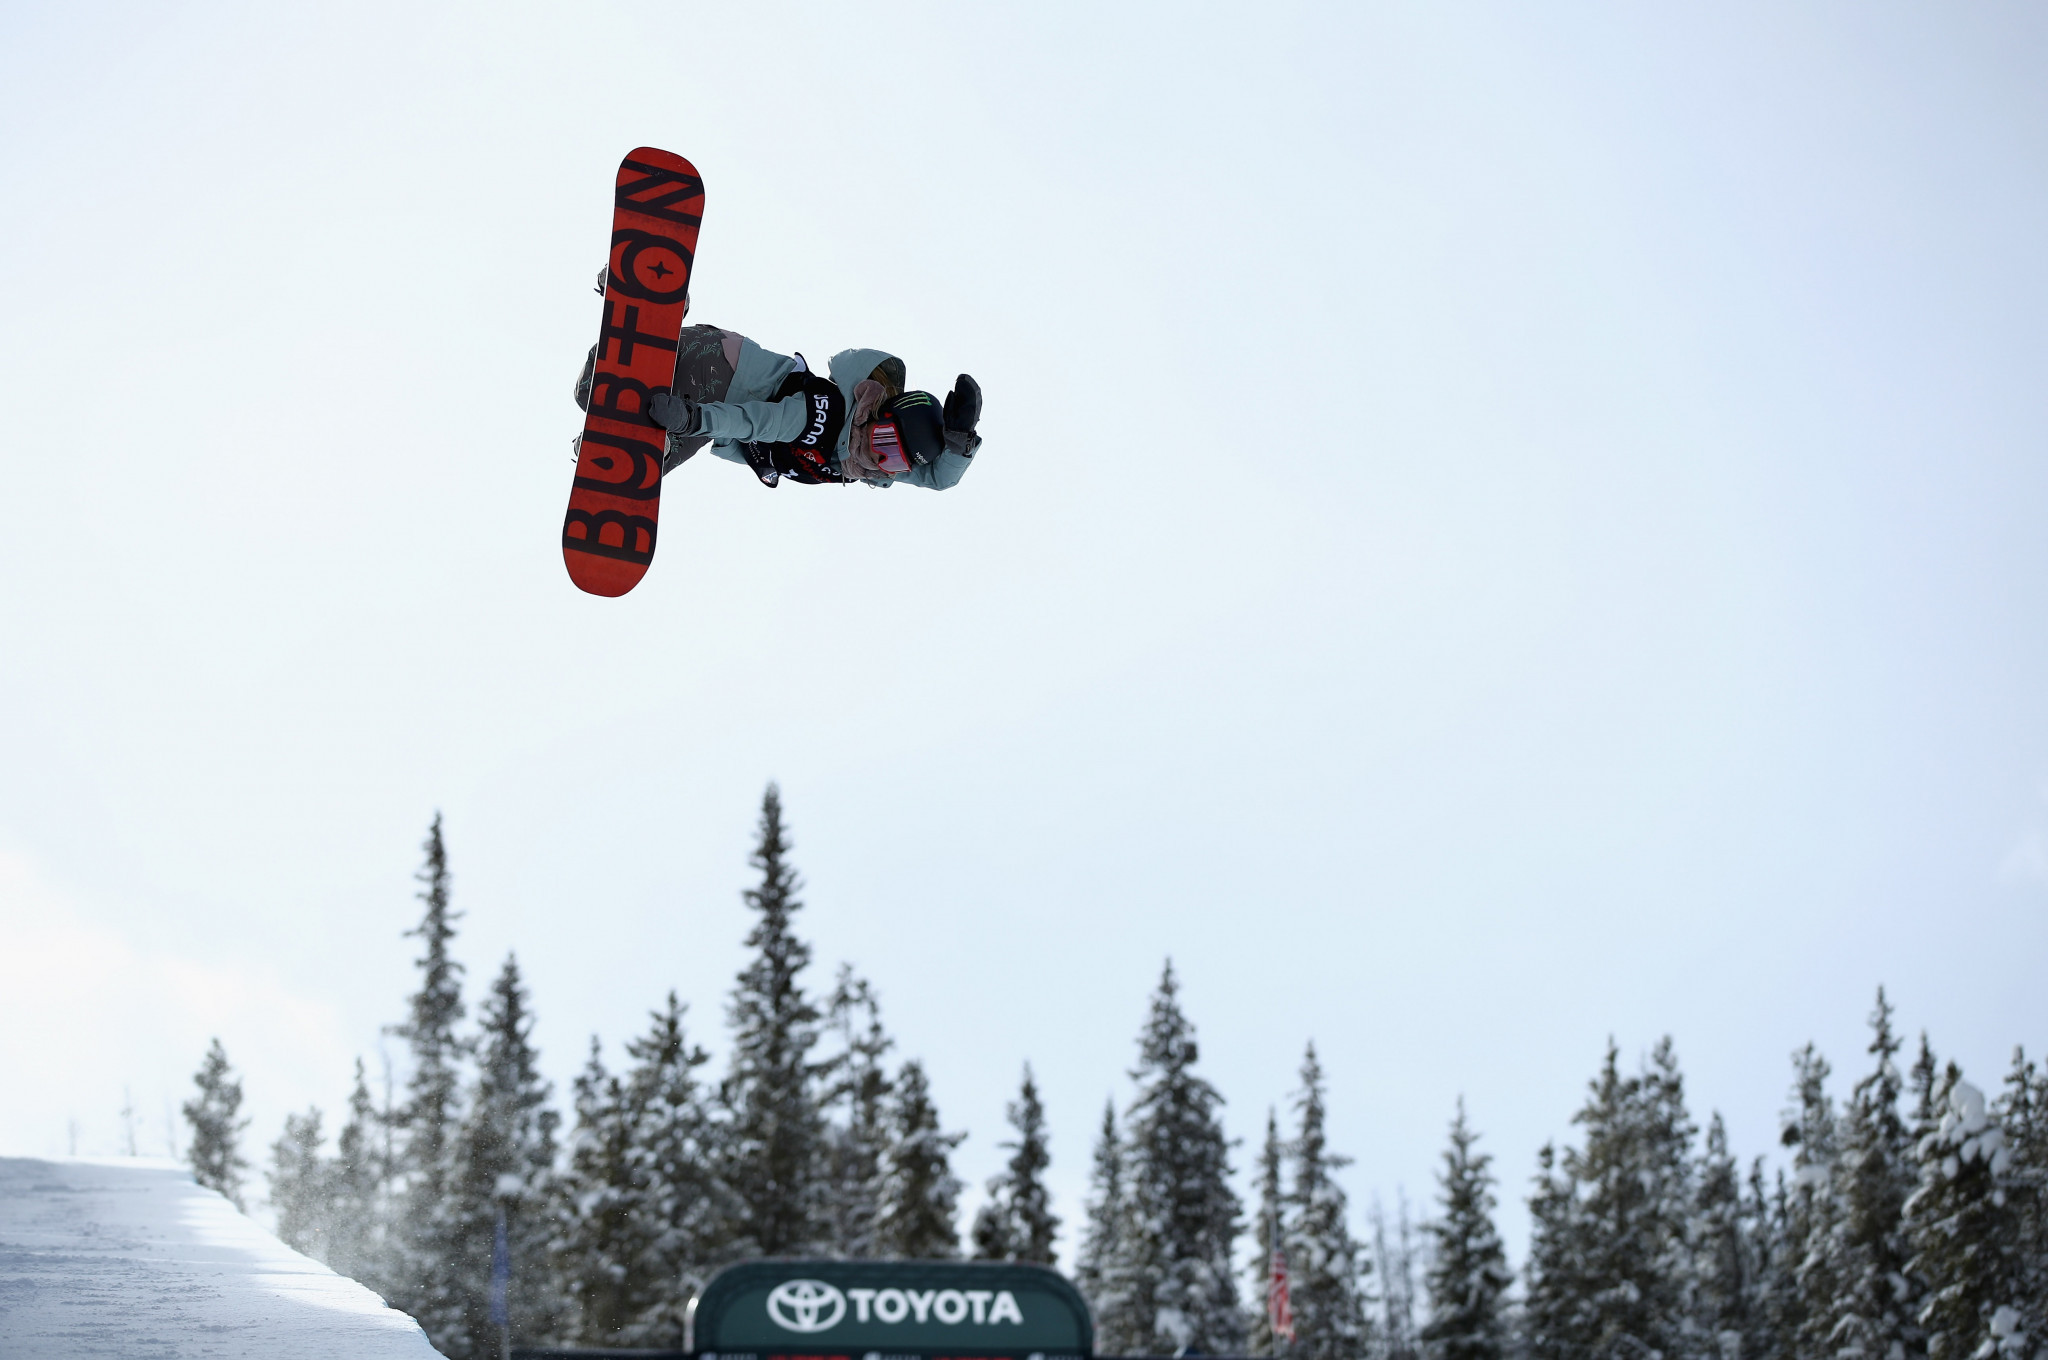 Olympic champion Kim in pole position to defend Snowboard World Cup title in Colorado